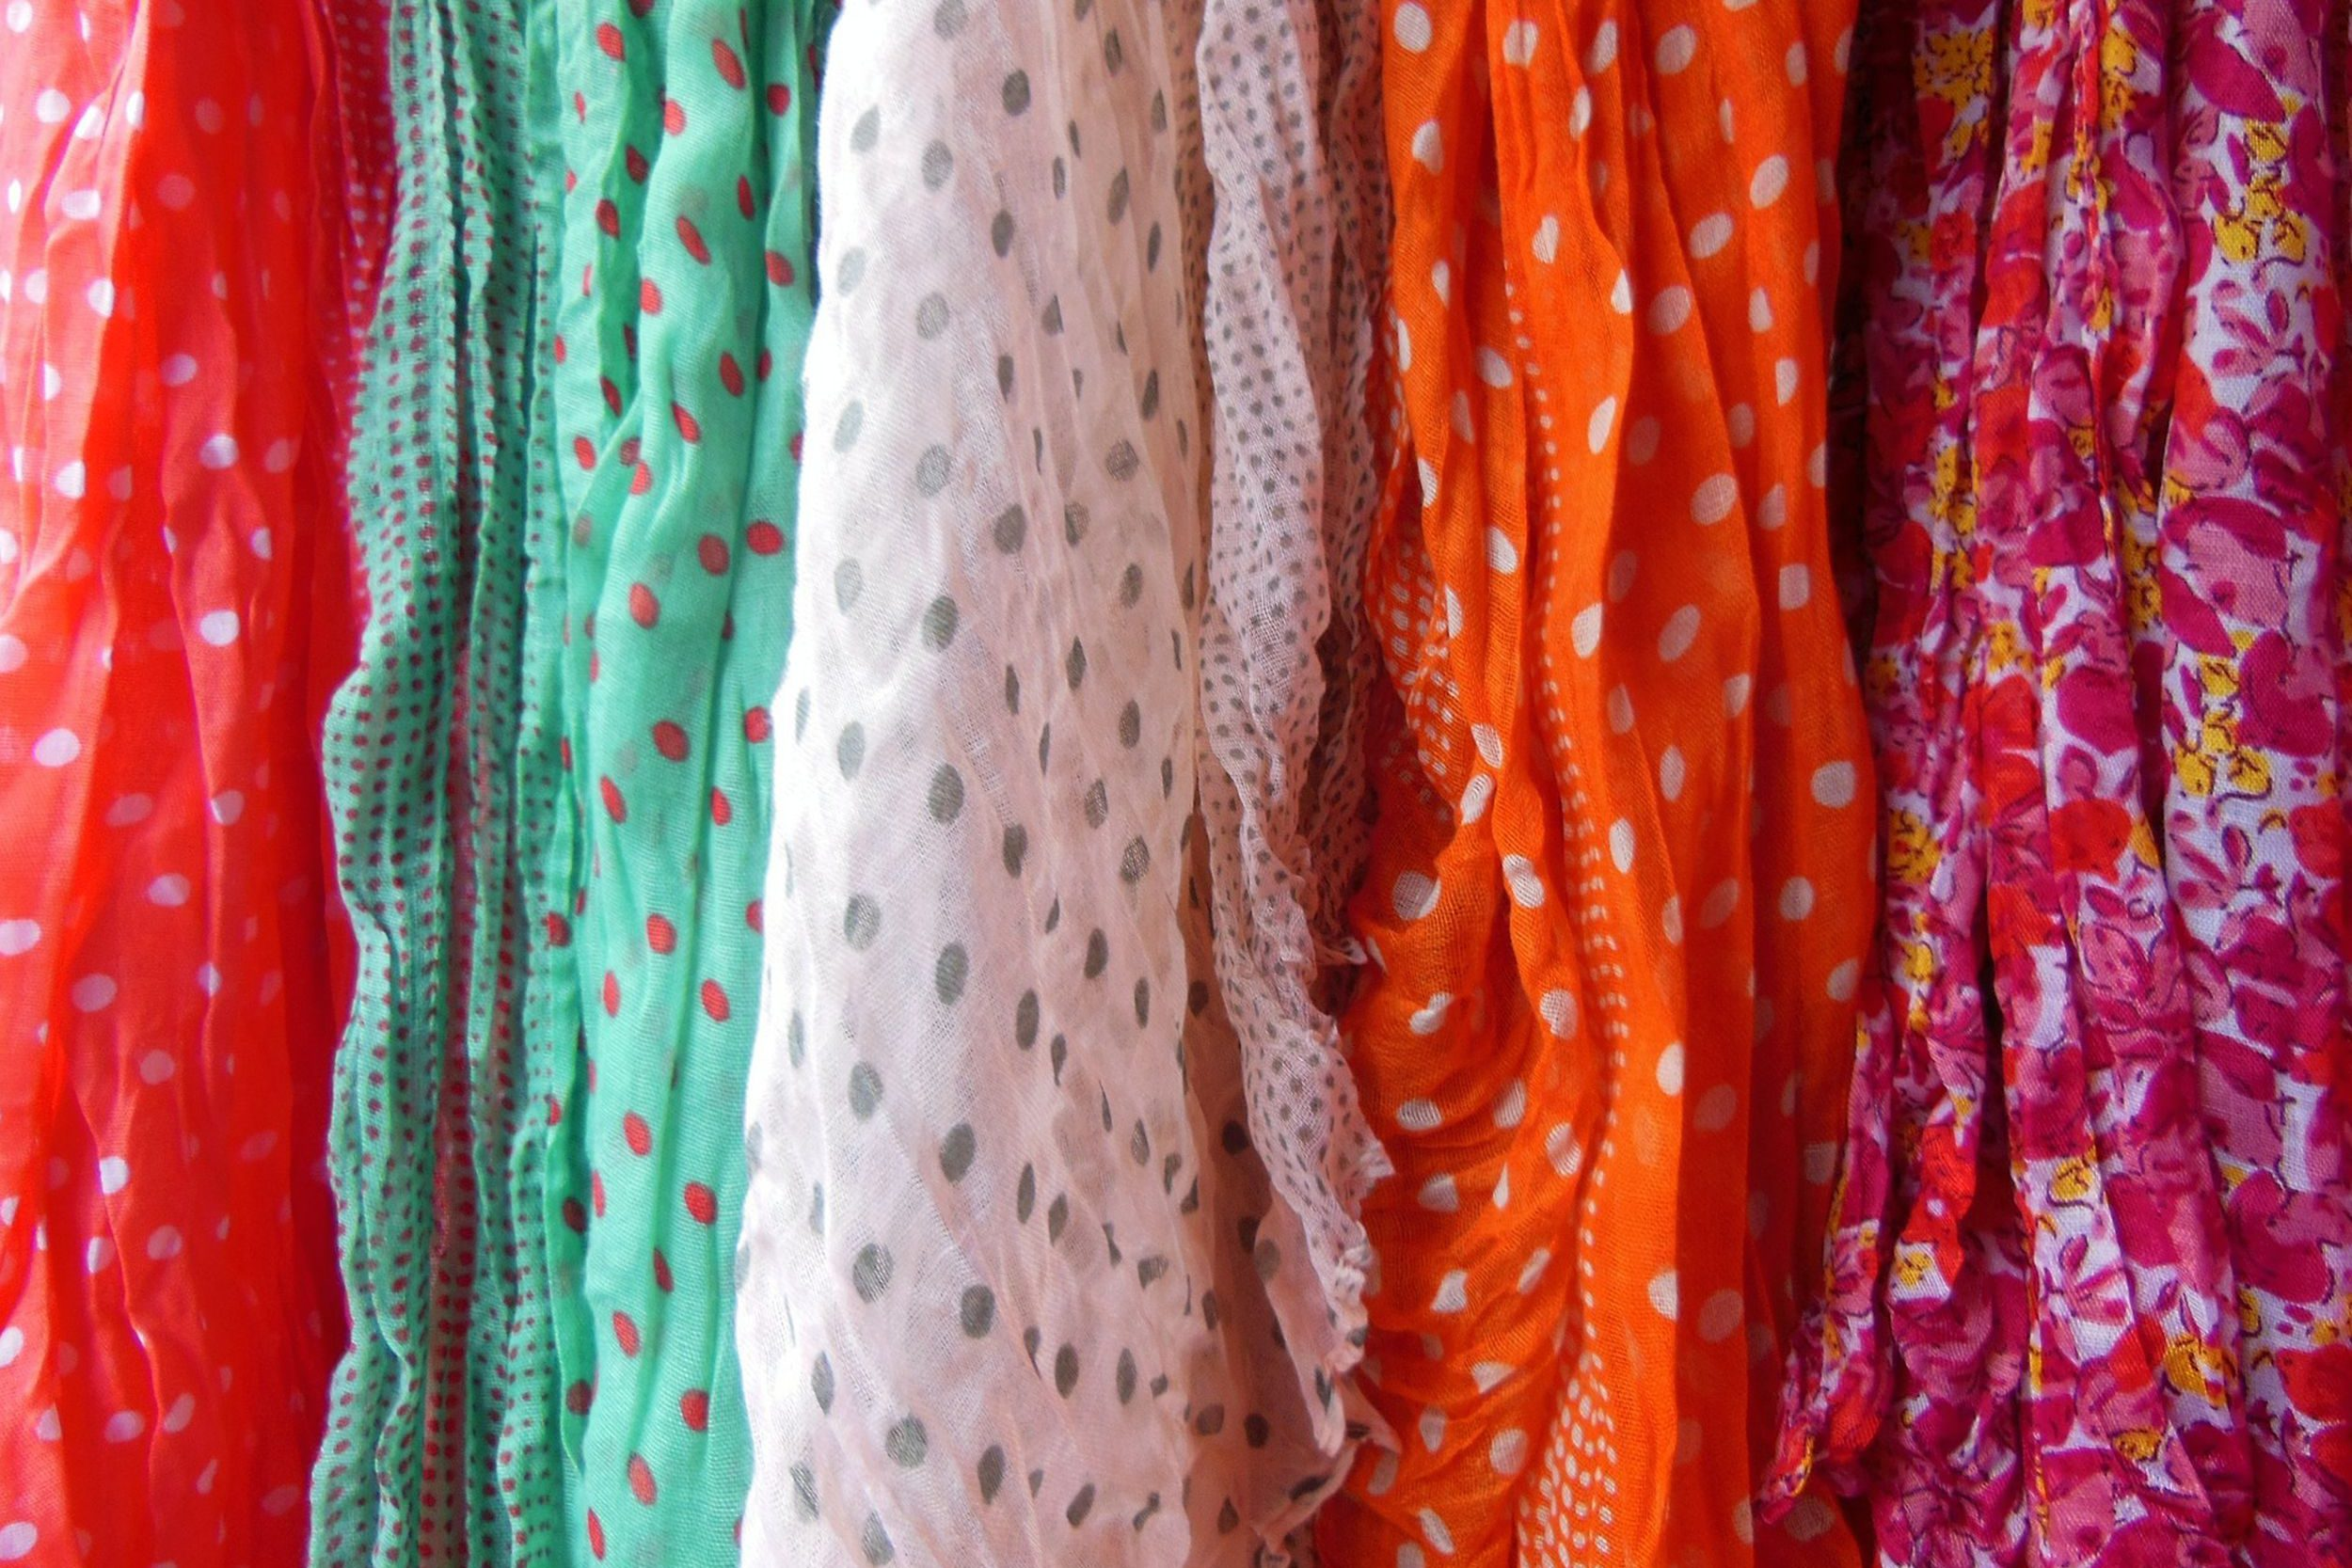 Digital fabric printing allows you to create beautiful, original scarves